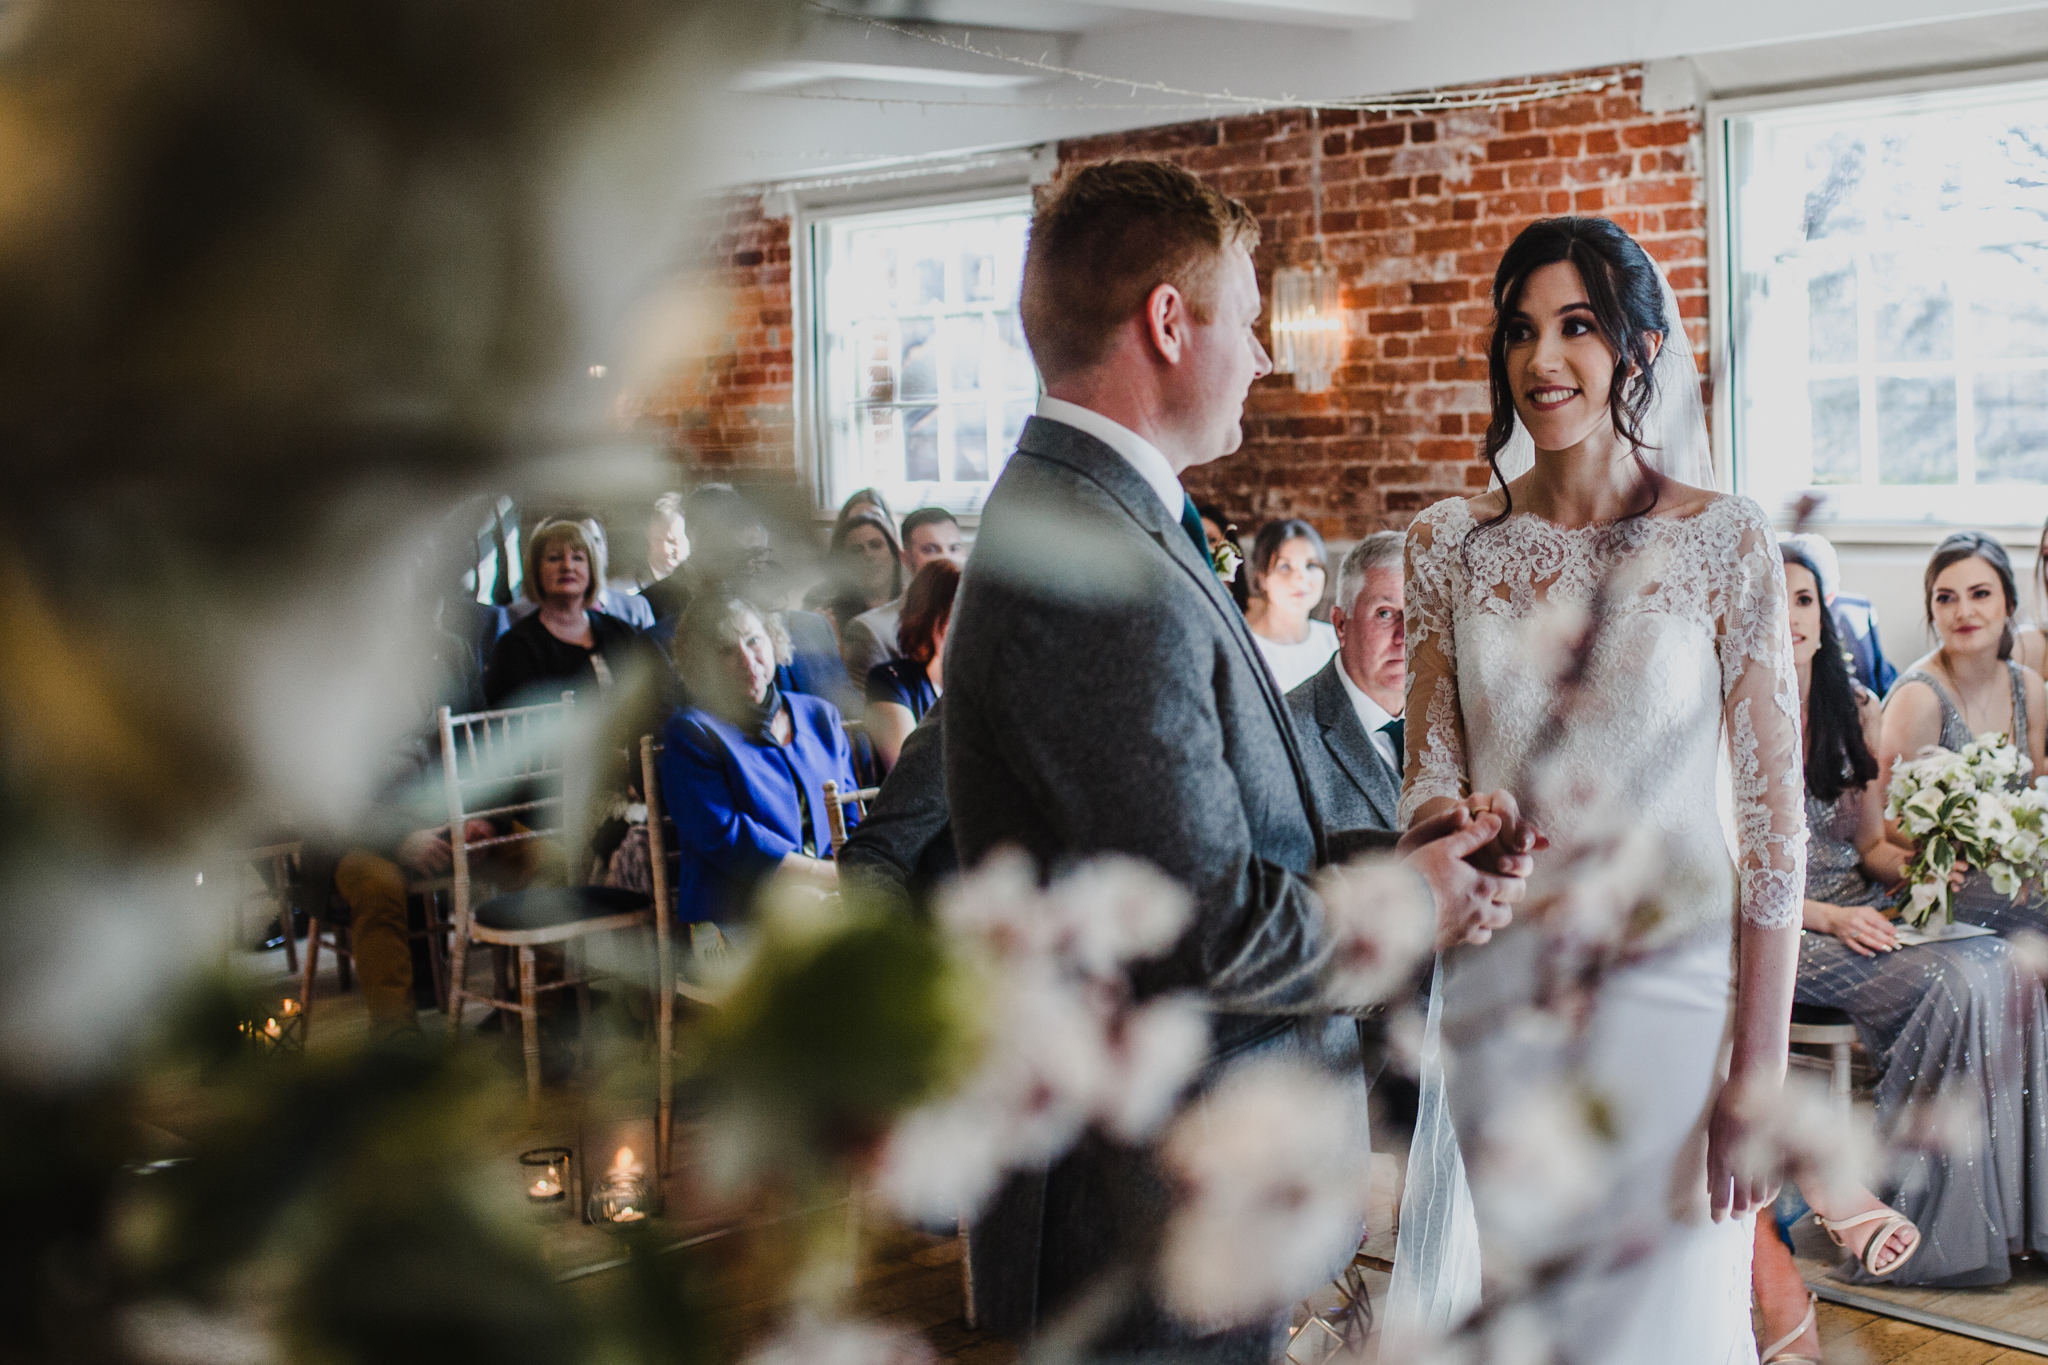 Image of bride and groom through theFlowers